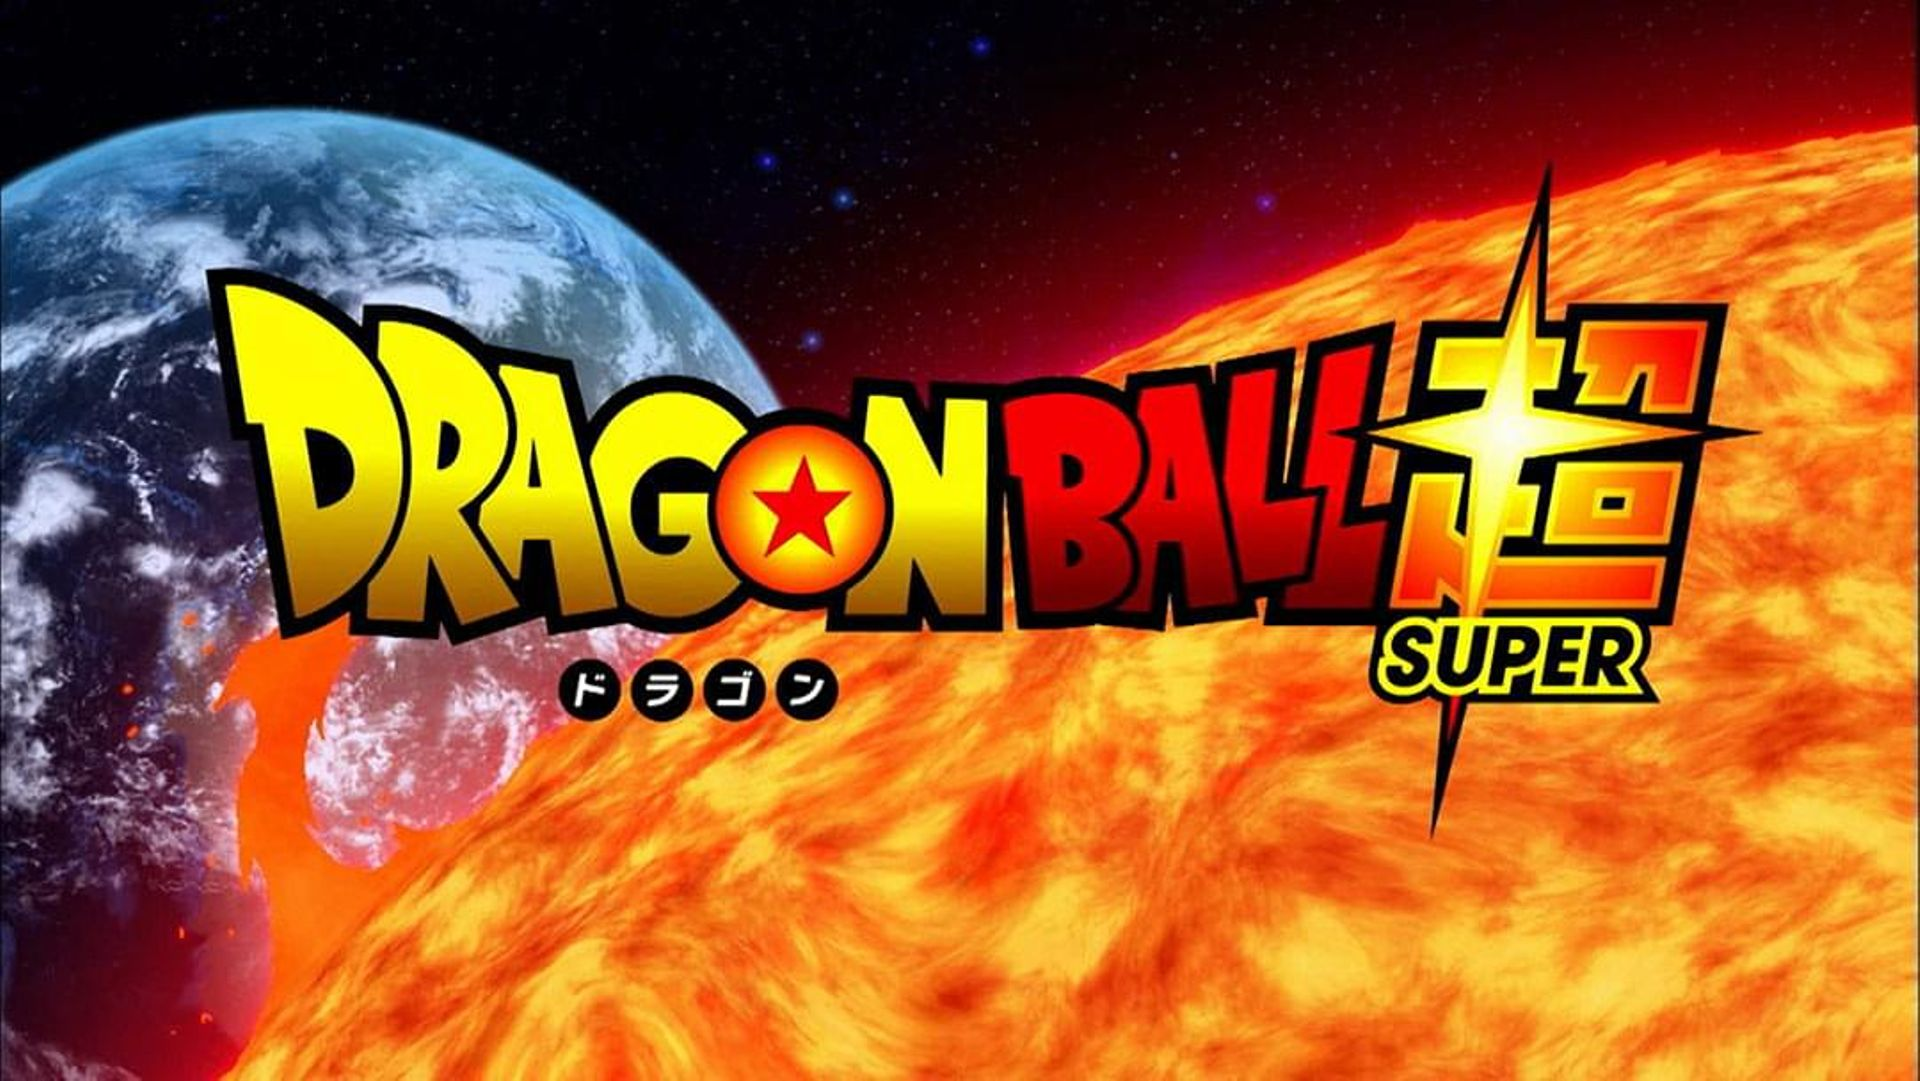 Dragon Ball Super - With His Pride on the Line! Vegeta's